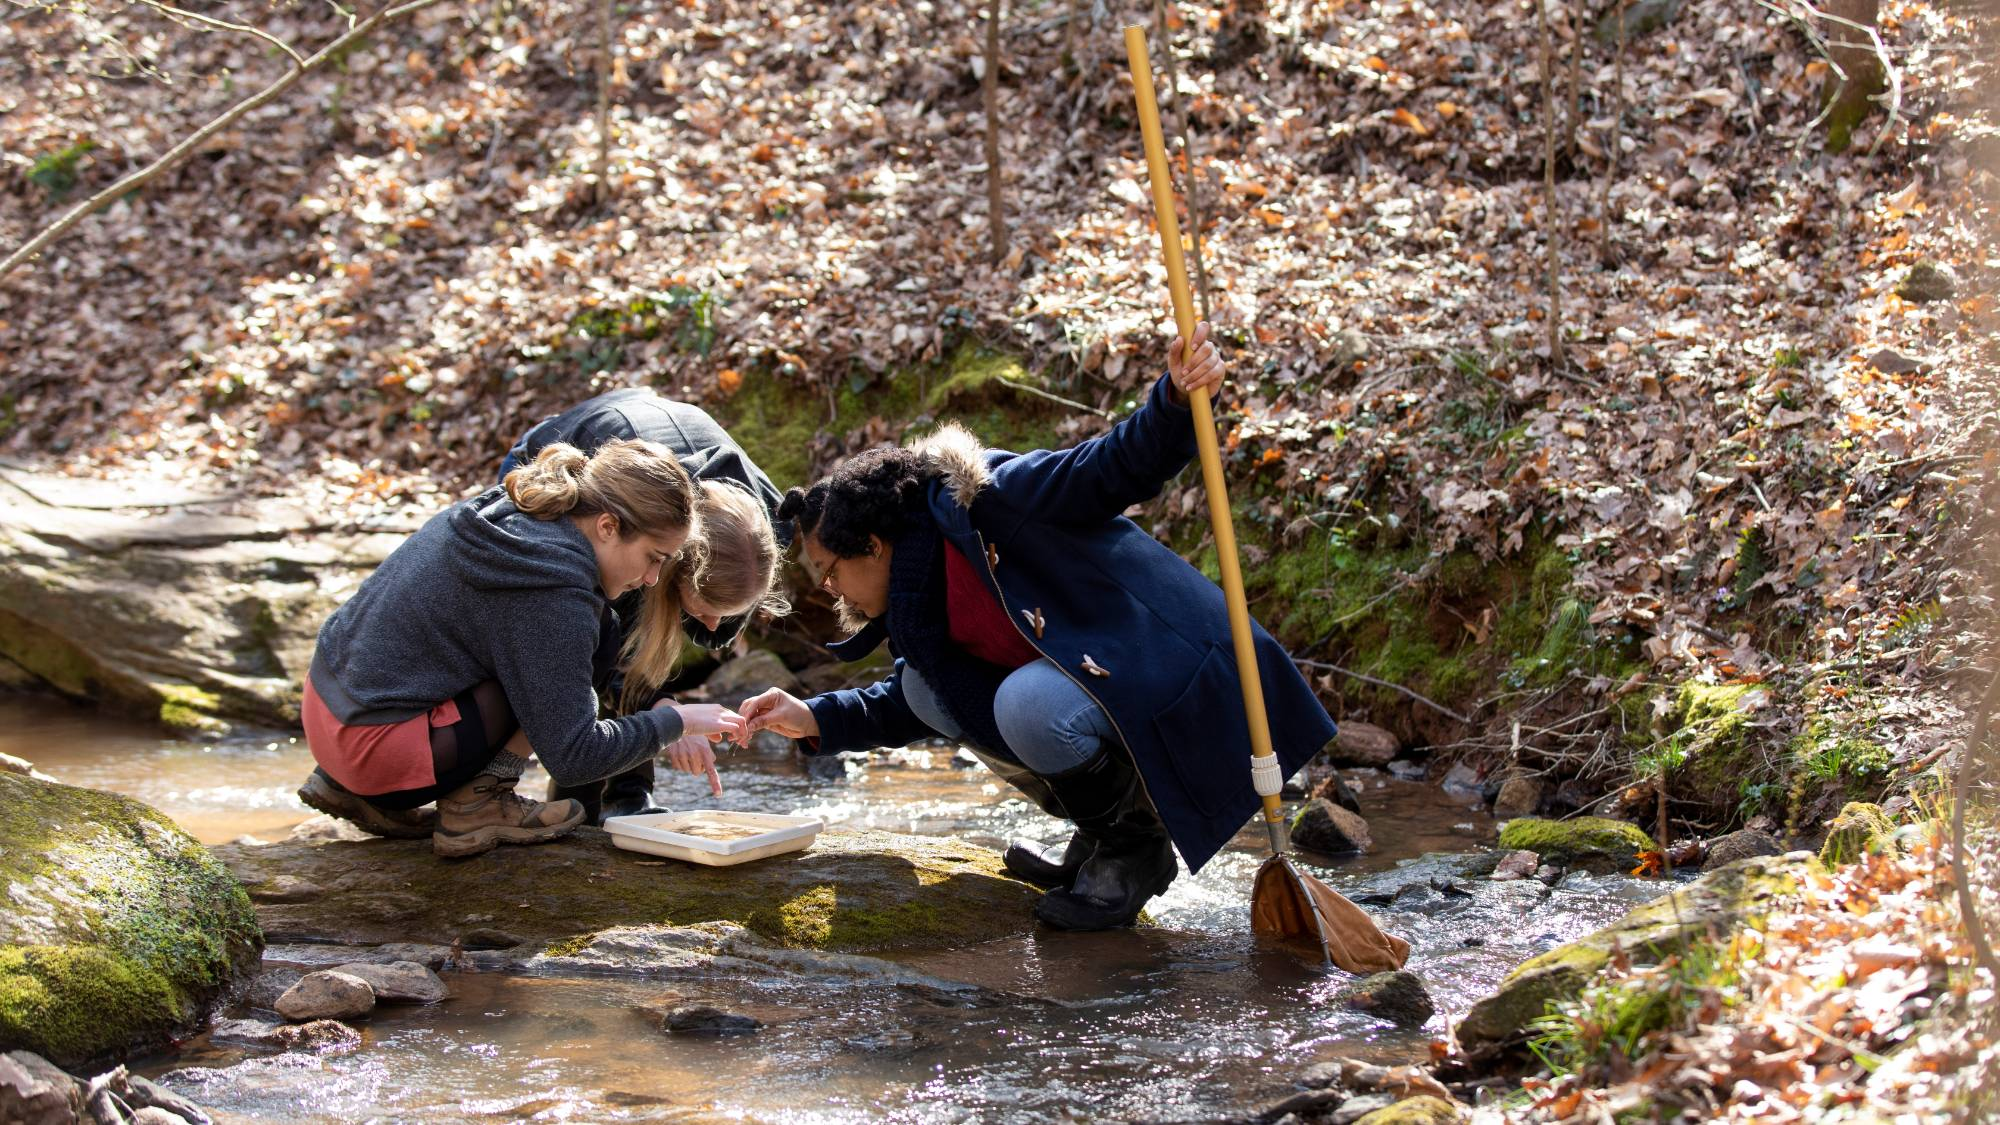 Three people crouch in a stream looking at a sample in a tray